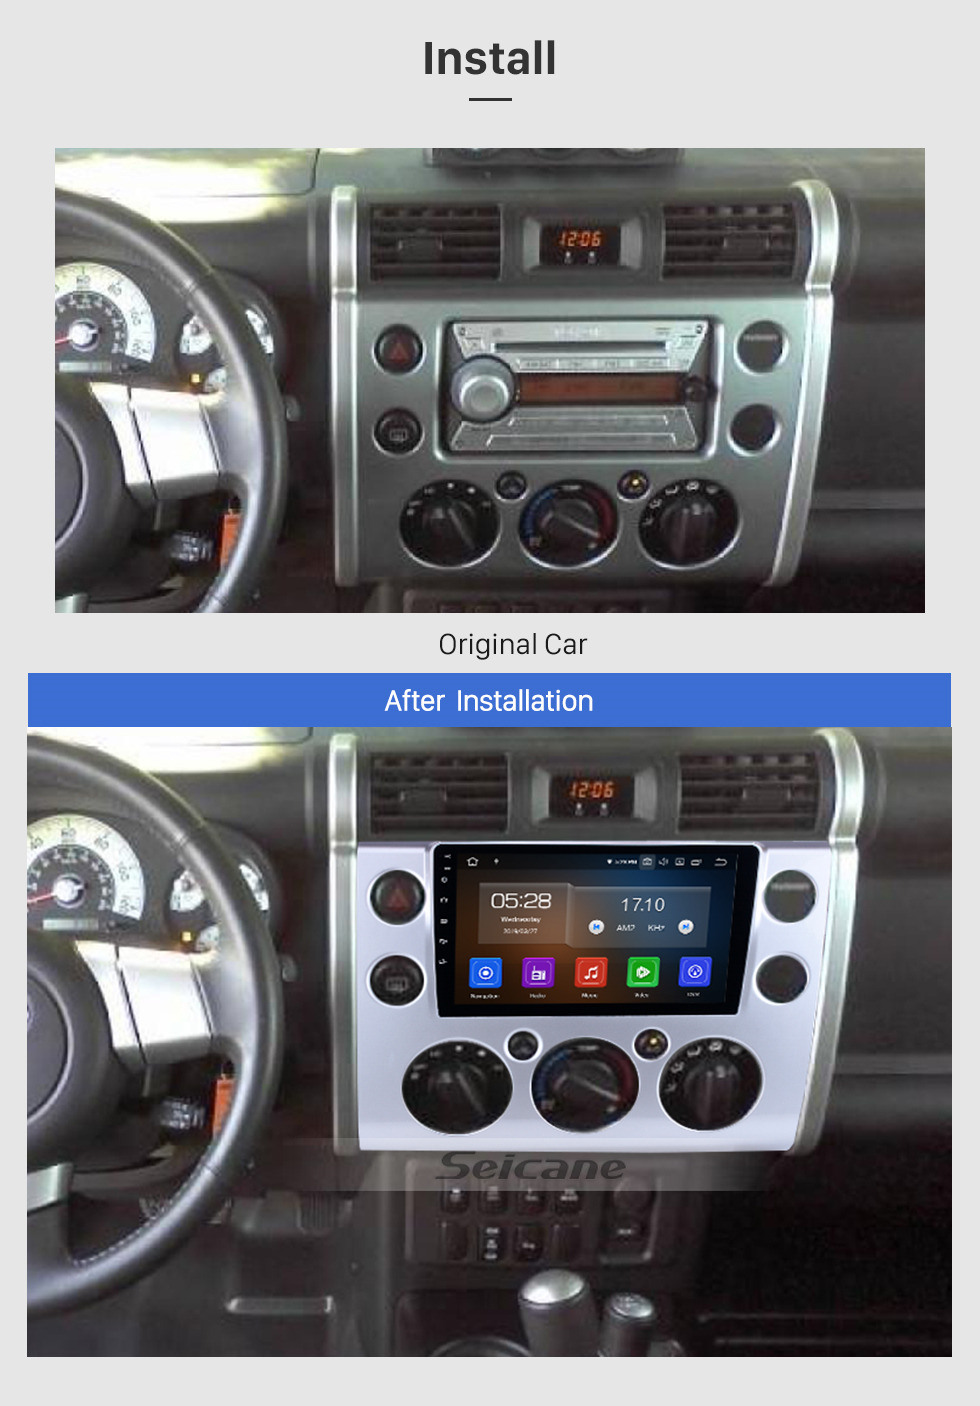 Seicane 9 inch OEM Android 10.0 HD Touchscreen GPS Navigation System Head Unit For 2007-2018 Toyota FJ CRUISER with USB Support 3G/4G WIFI DVR OBD II Steering Wheel Control